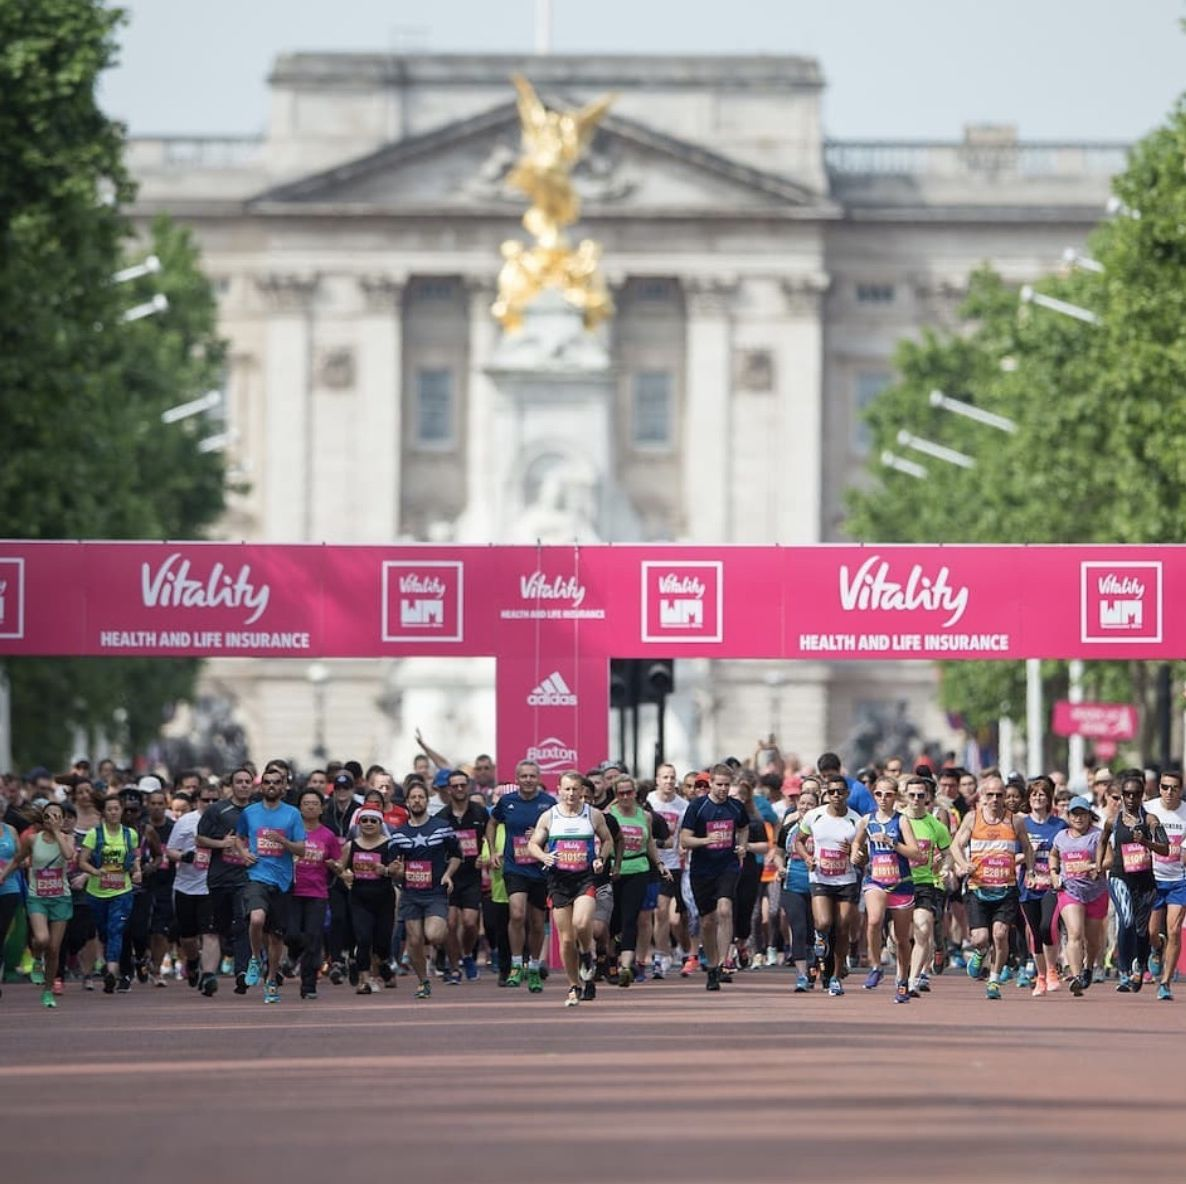 The runners and celebs doing the Vitality London 10,000 and Westminster Mile this weekend